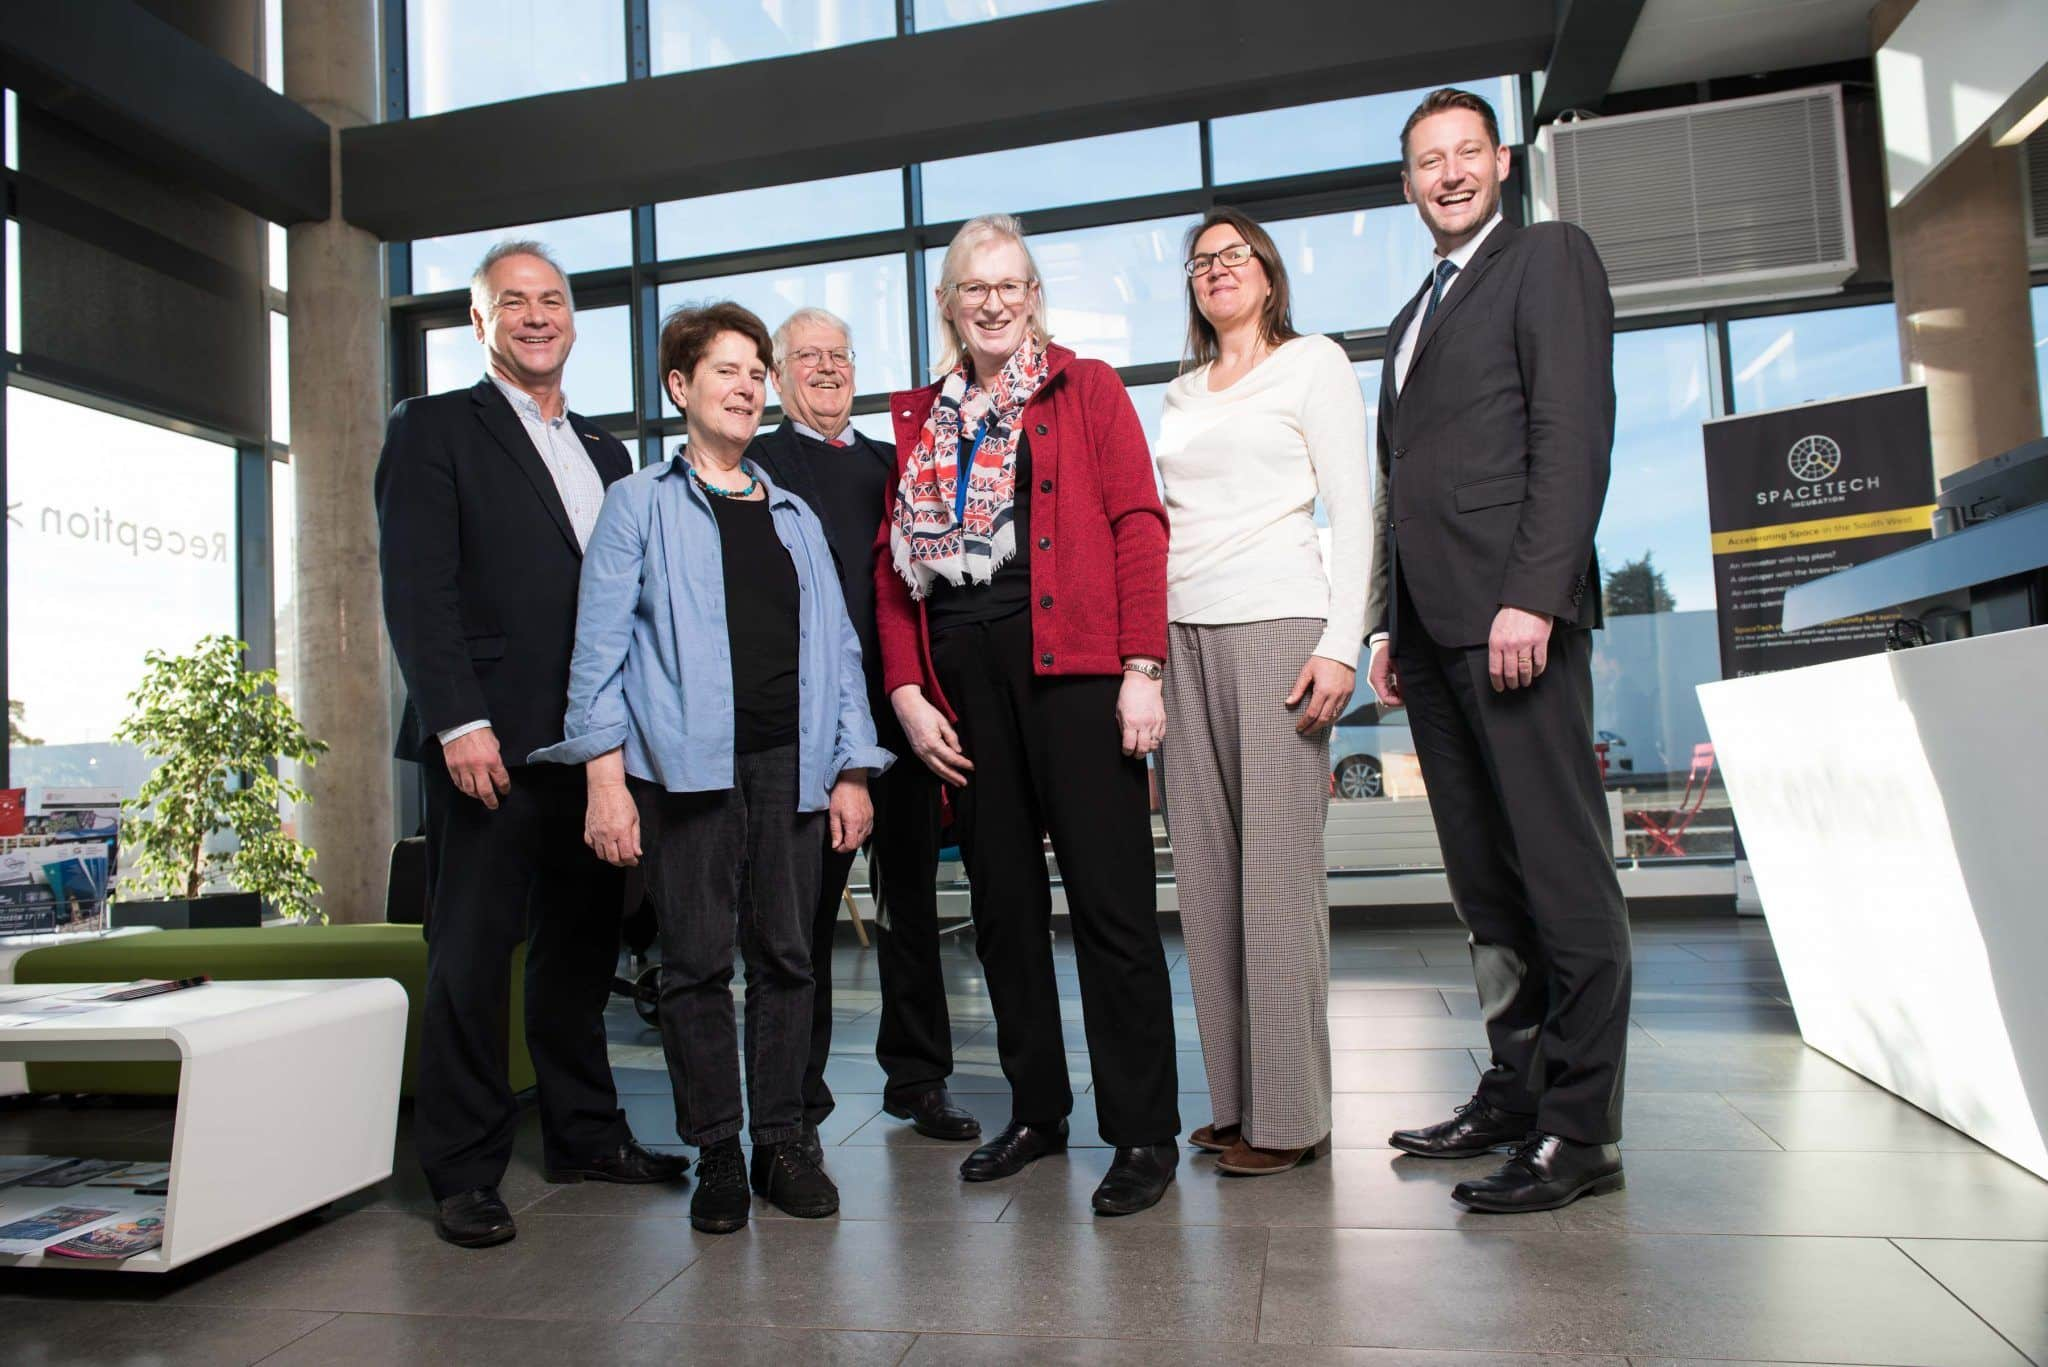 Exeter Science Park plays host to the city's German 'twins'